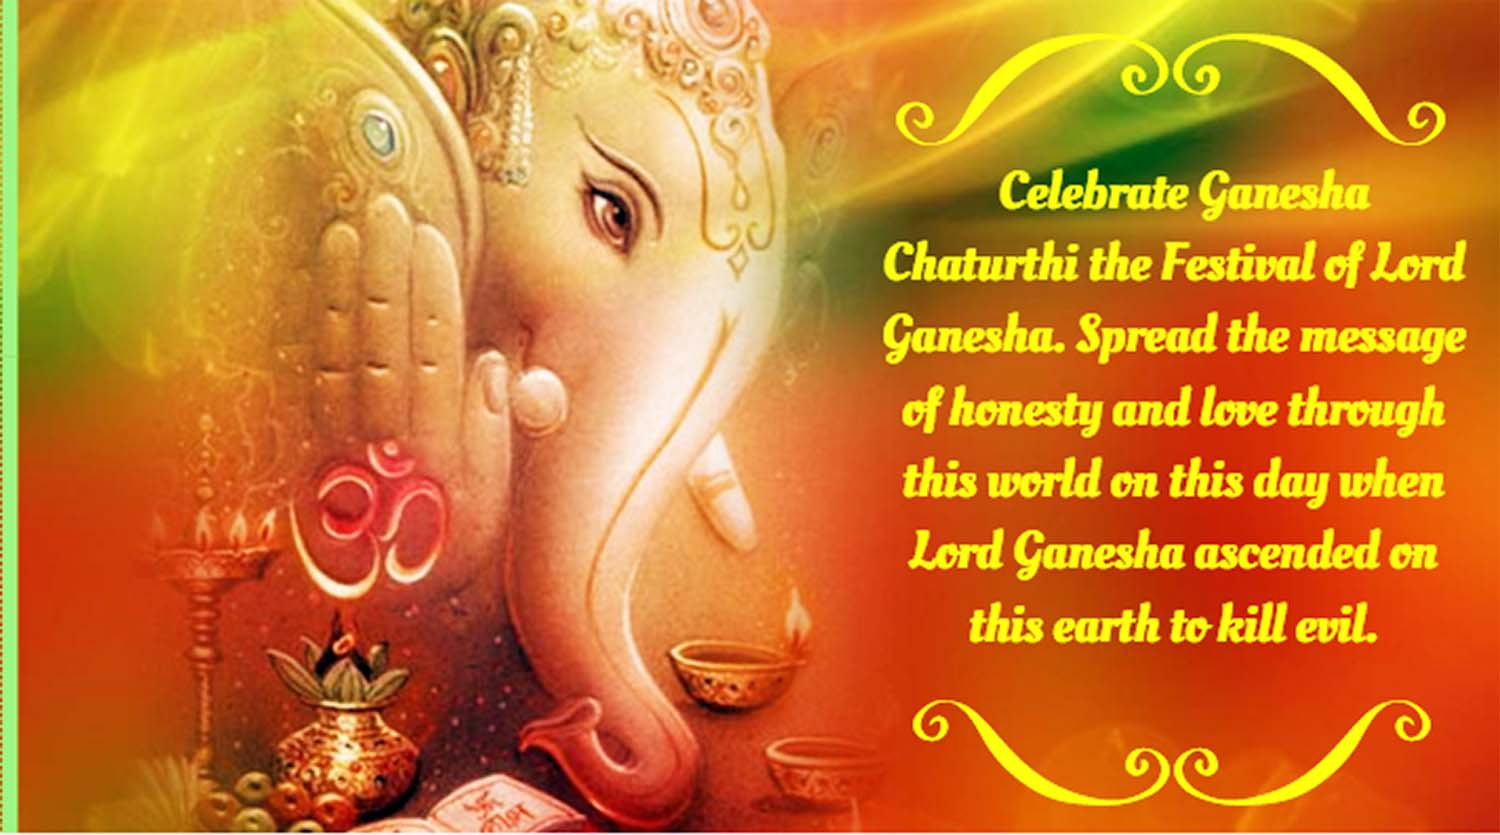 Greetings for ganesh chaturthi